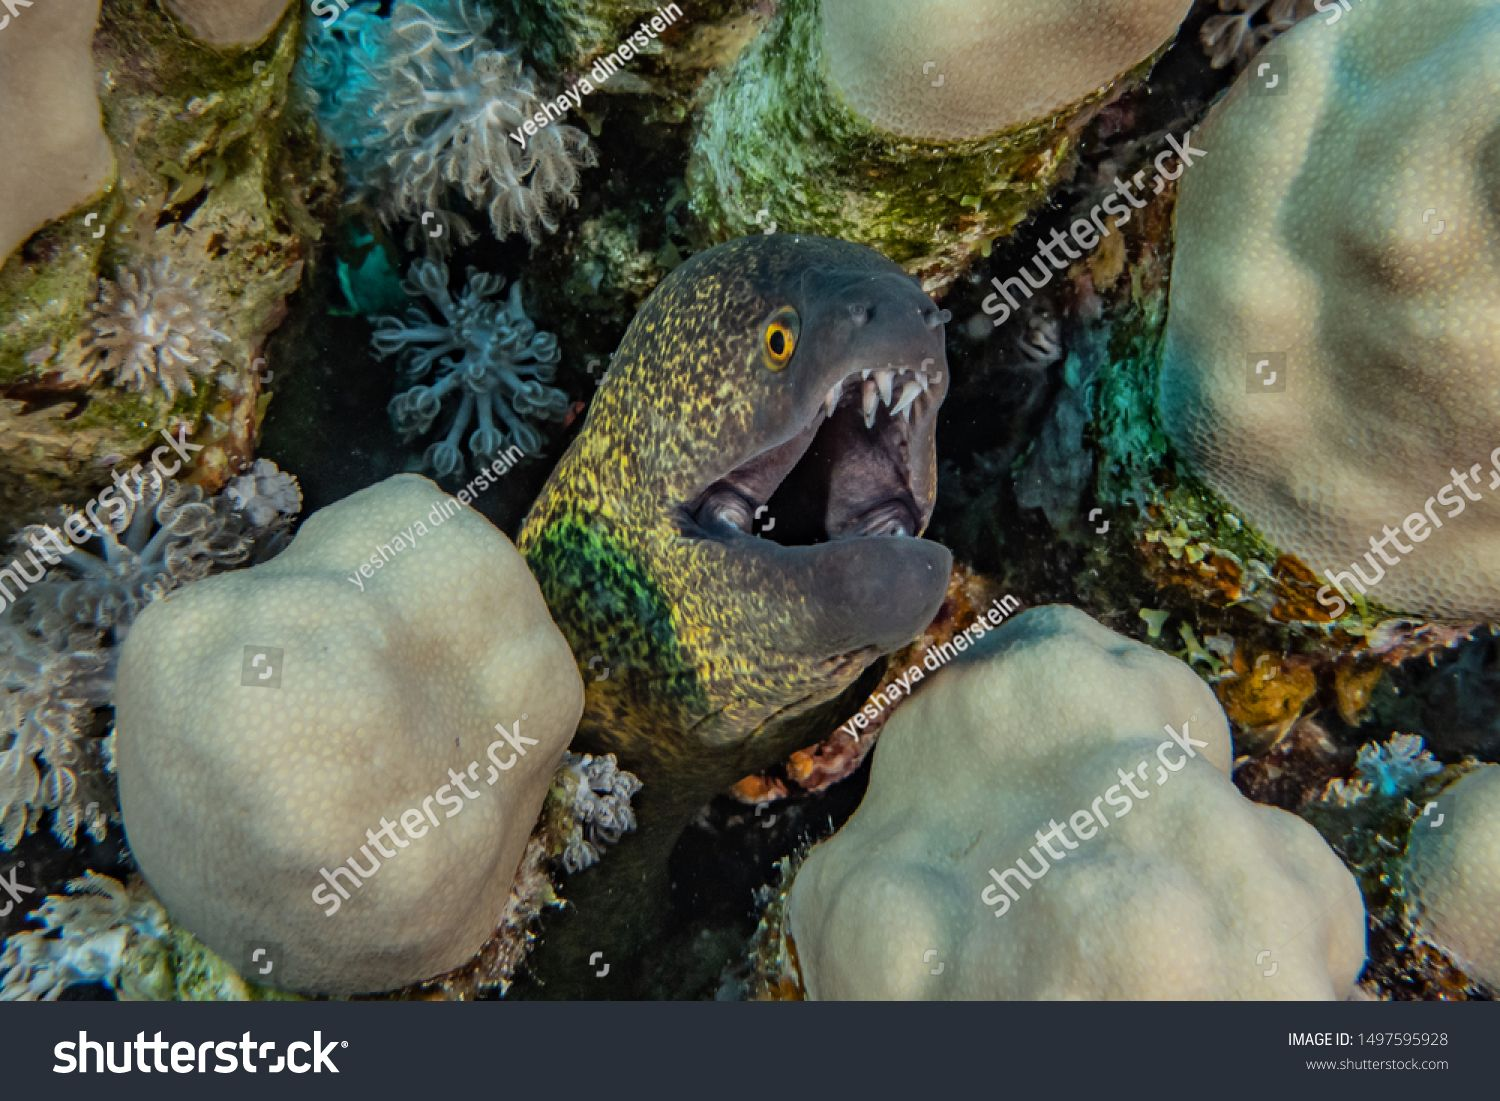 Moray eel Mooray lycodontis undulatus in the Red Sea, eilat israel\n #Sponsored , #Aff, #Mooray#lycodontis#Moray#eel